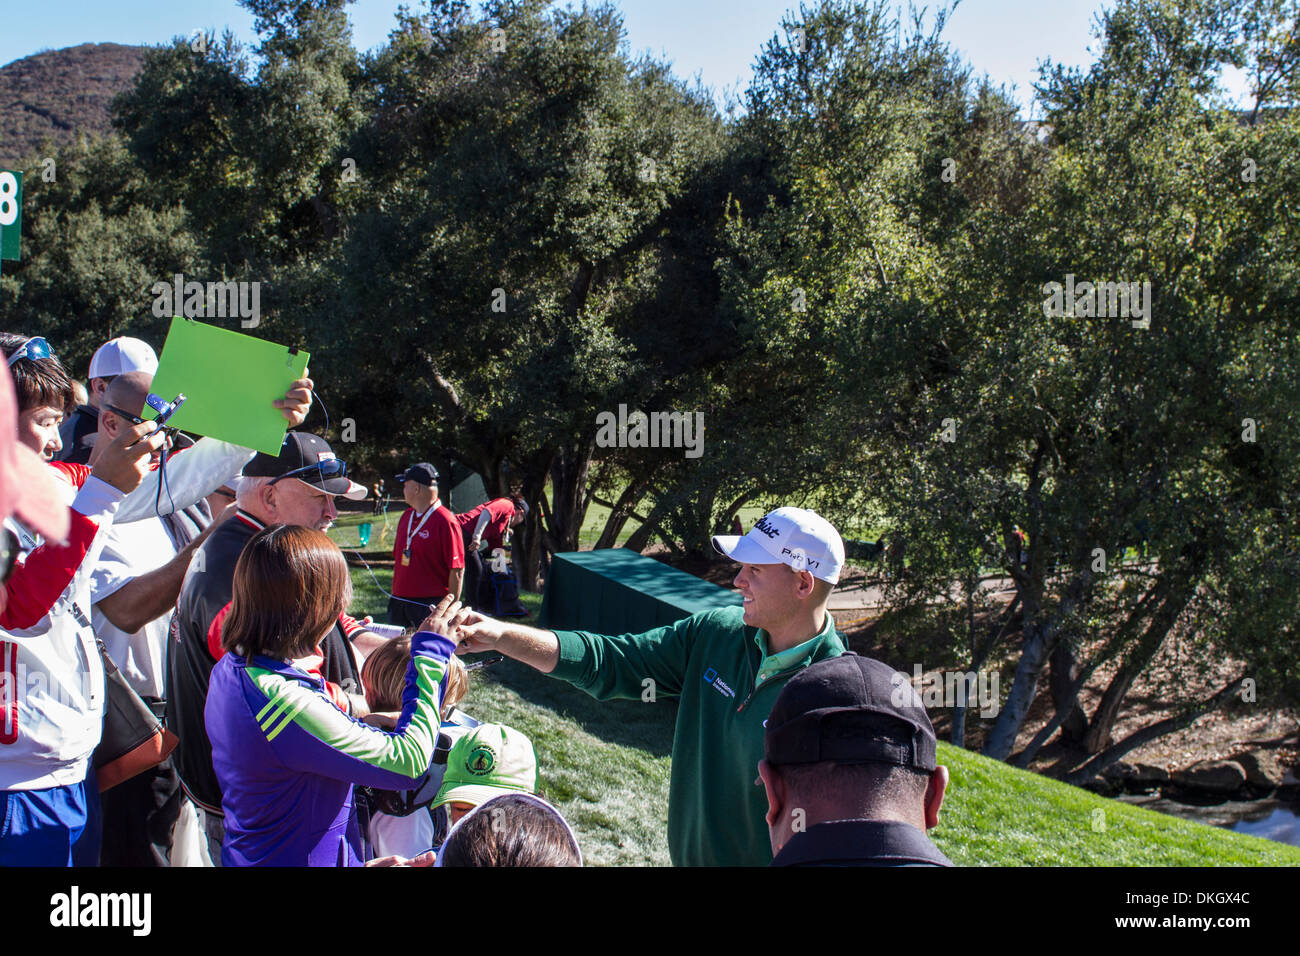 at the 2013 Northwestern Mutual Challenge at Sherwood Country Club in Thousand Oaks California - Stock Image